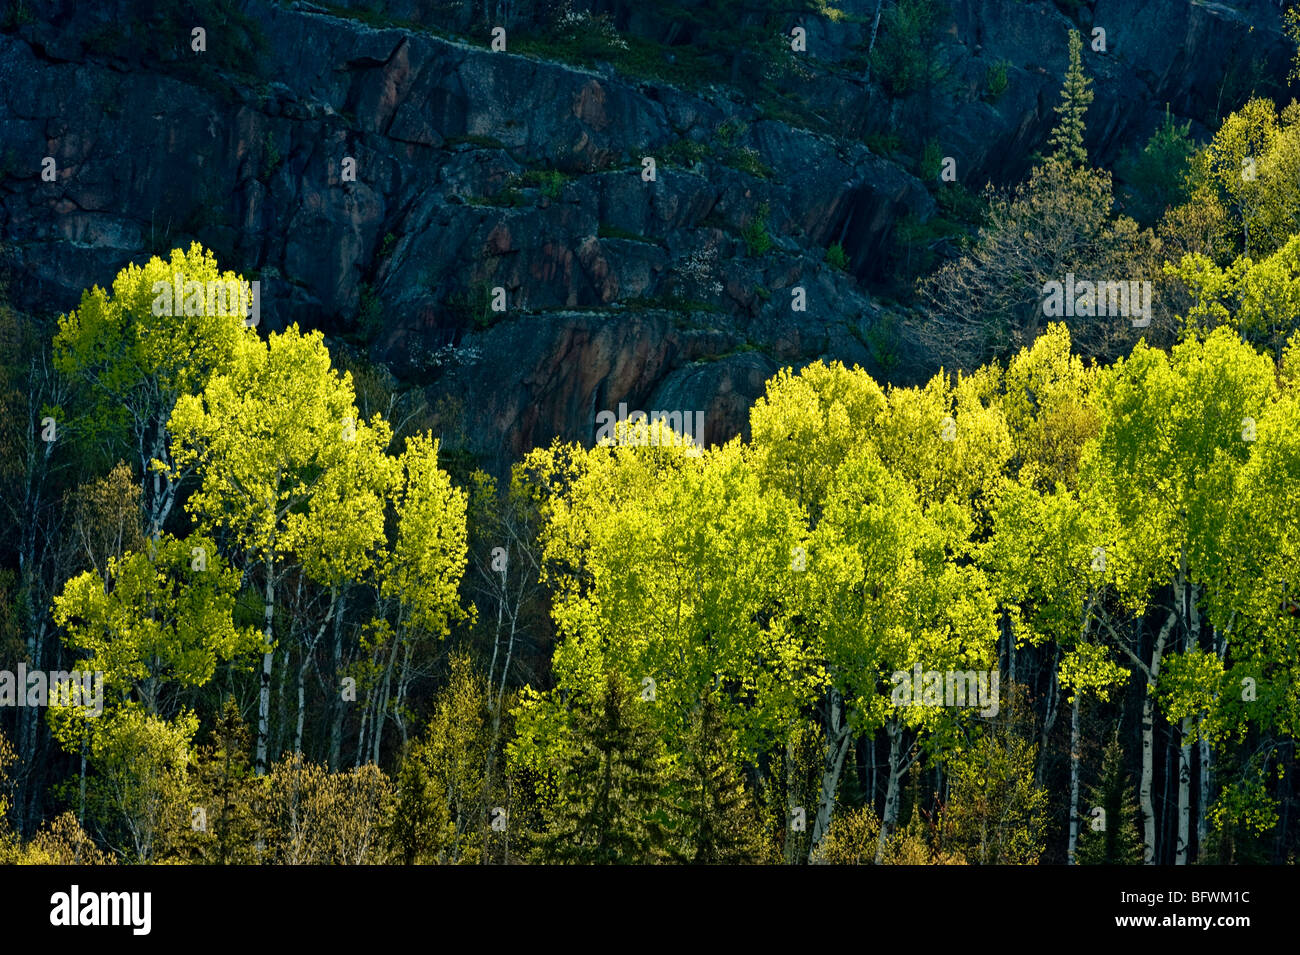 Aspens and birches with emerging foliage at base of cliff overlooking Onaping River, Greater Sudbury, Ontario, Canada Stock Photo